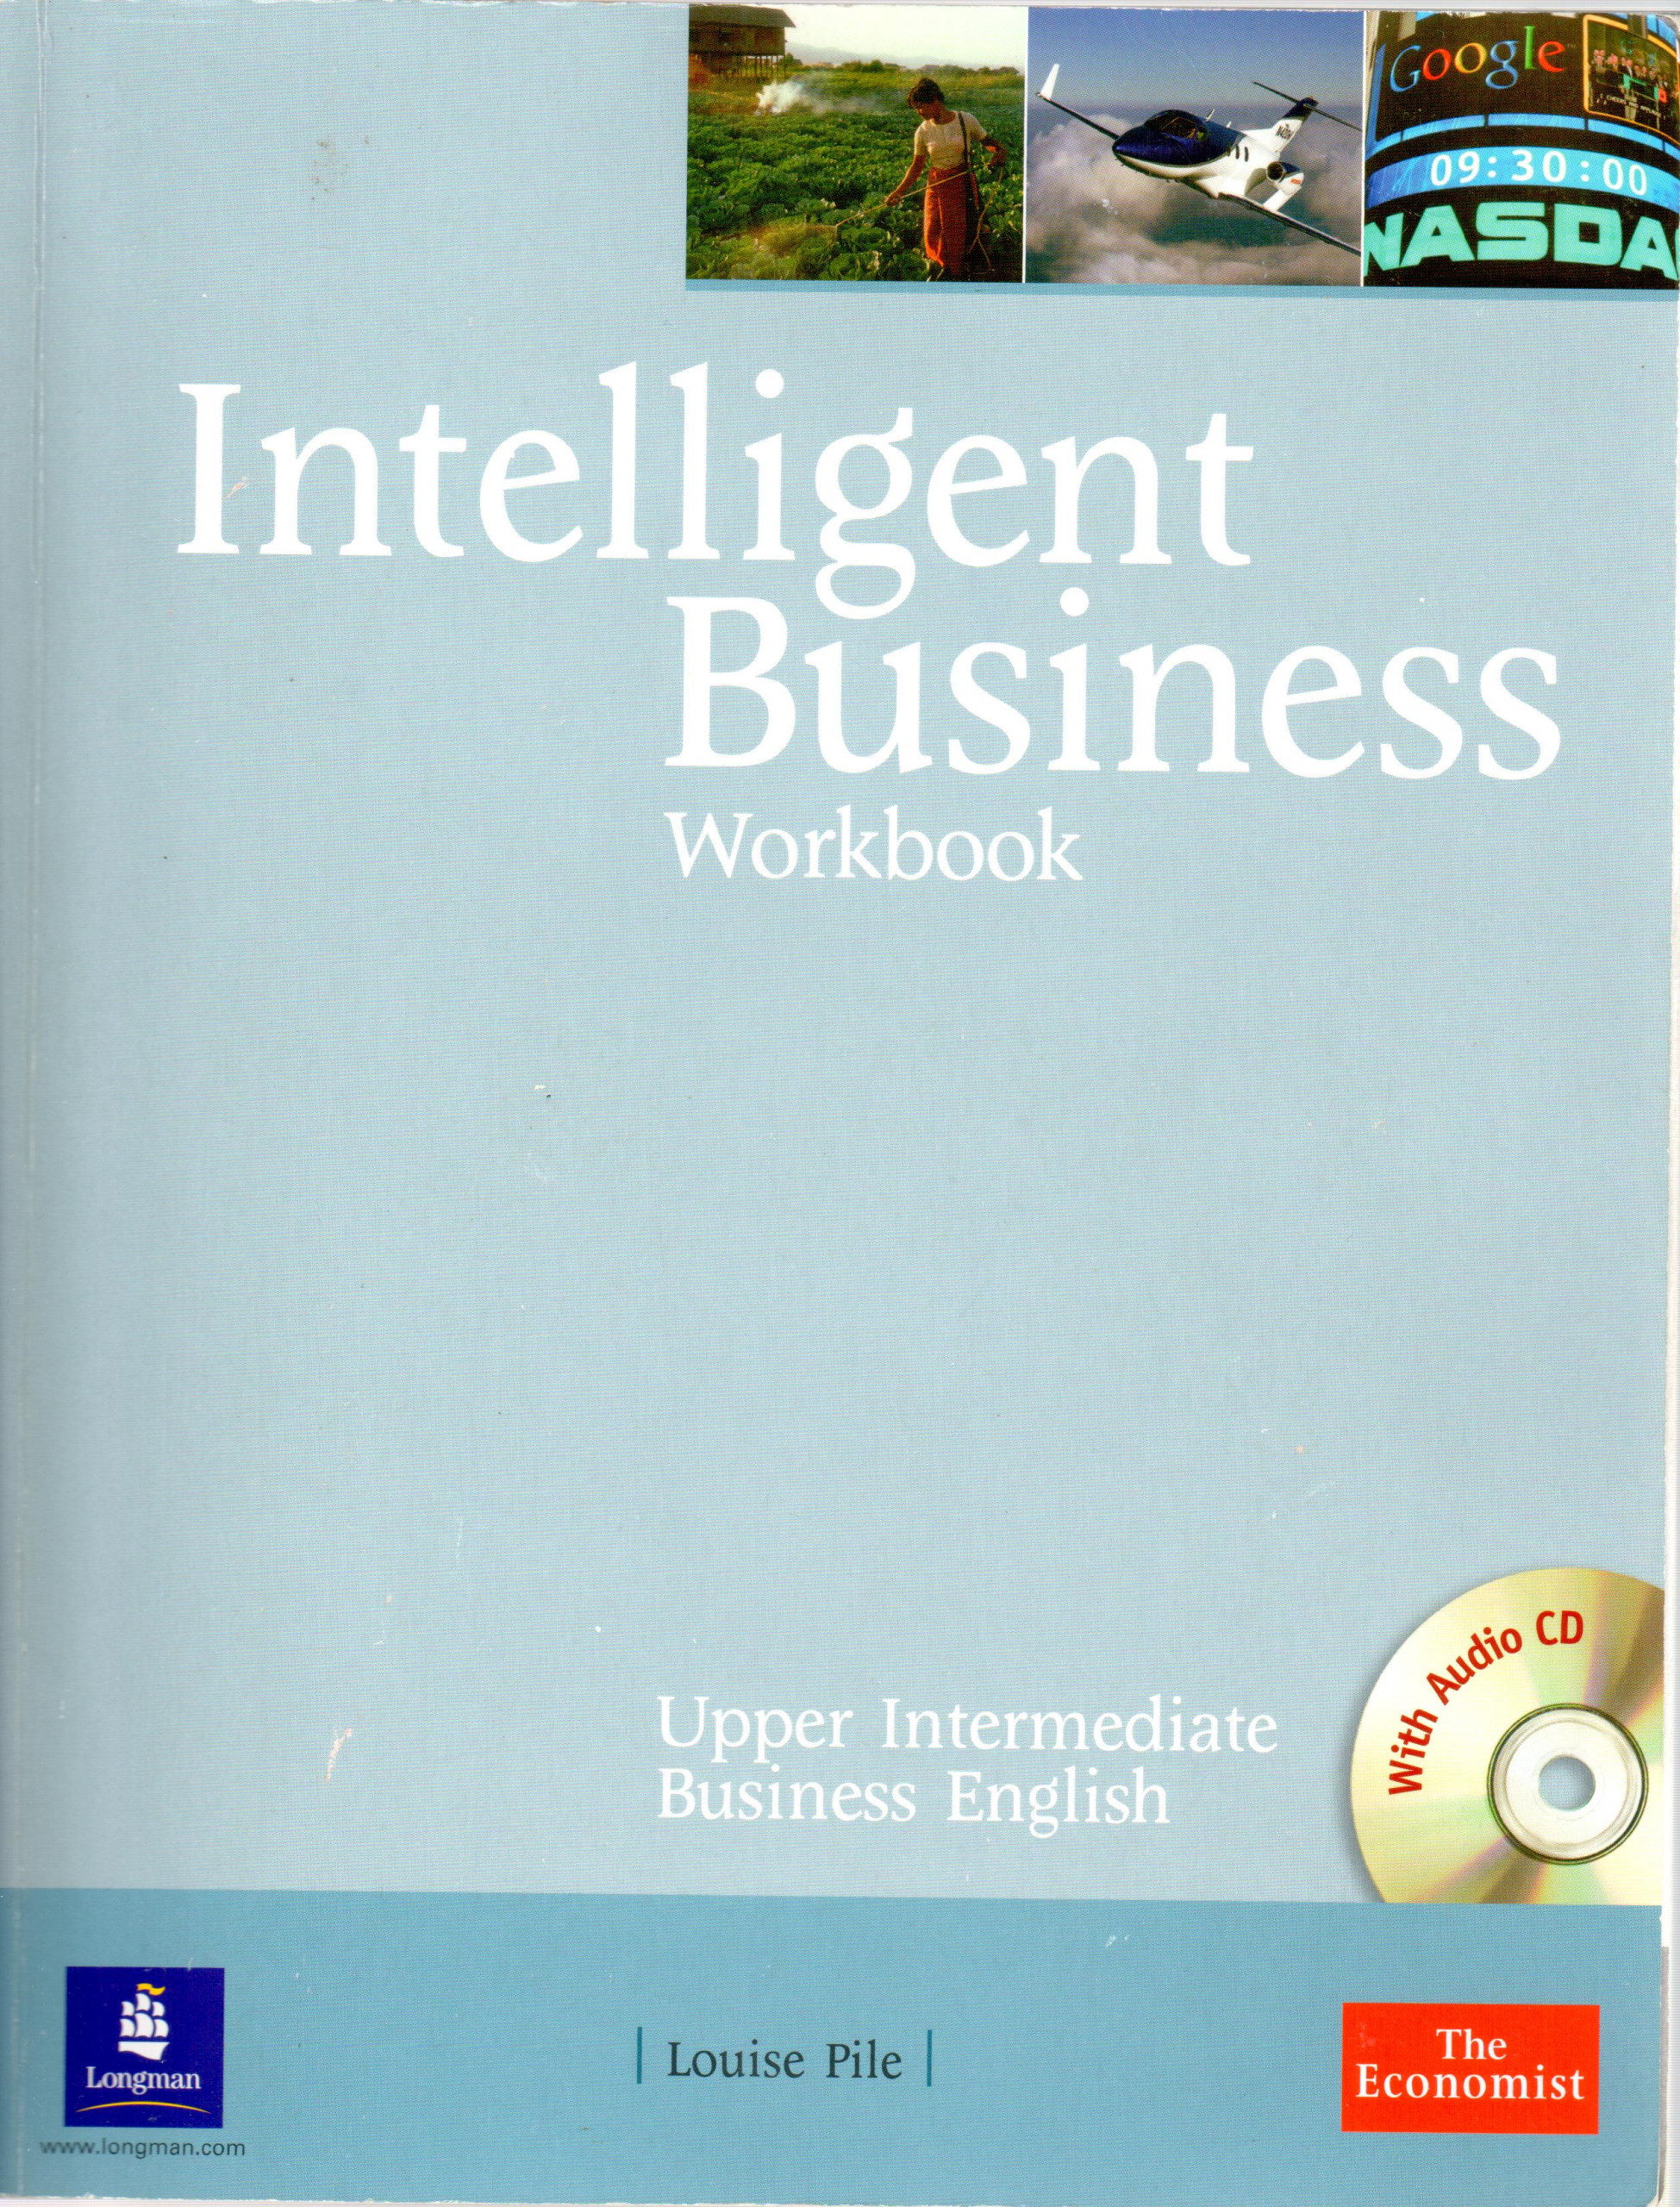 Intelligent Business Workbook, Upper Intermediate Business English - Náhled učebnice